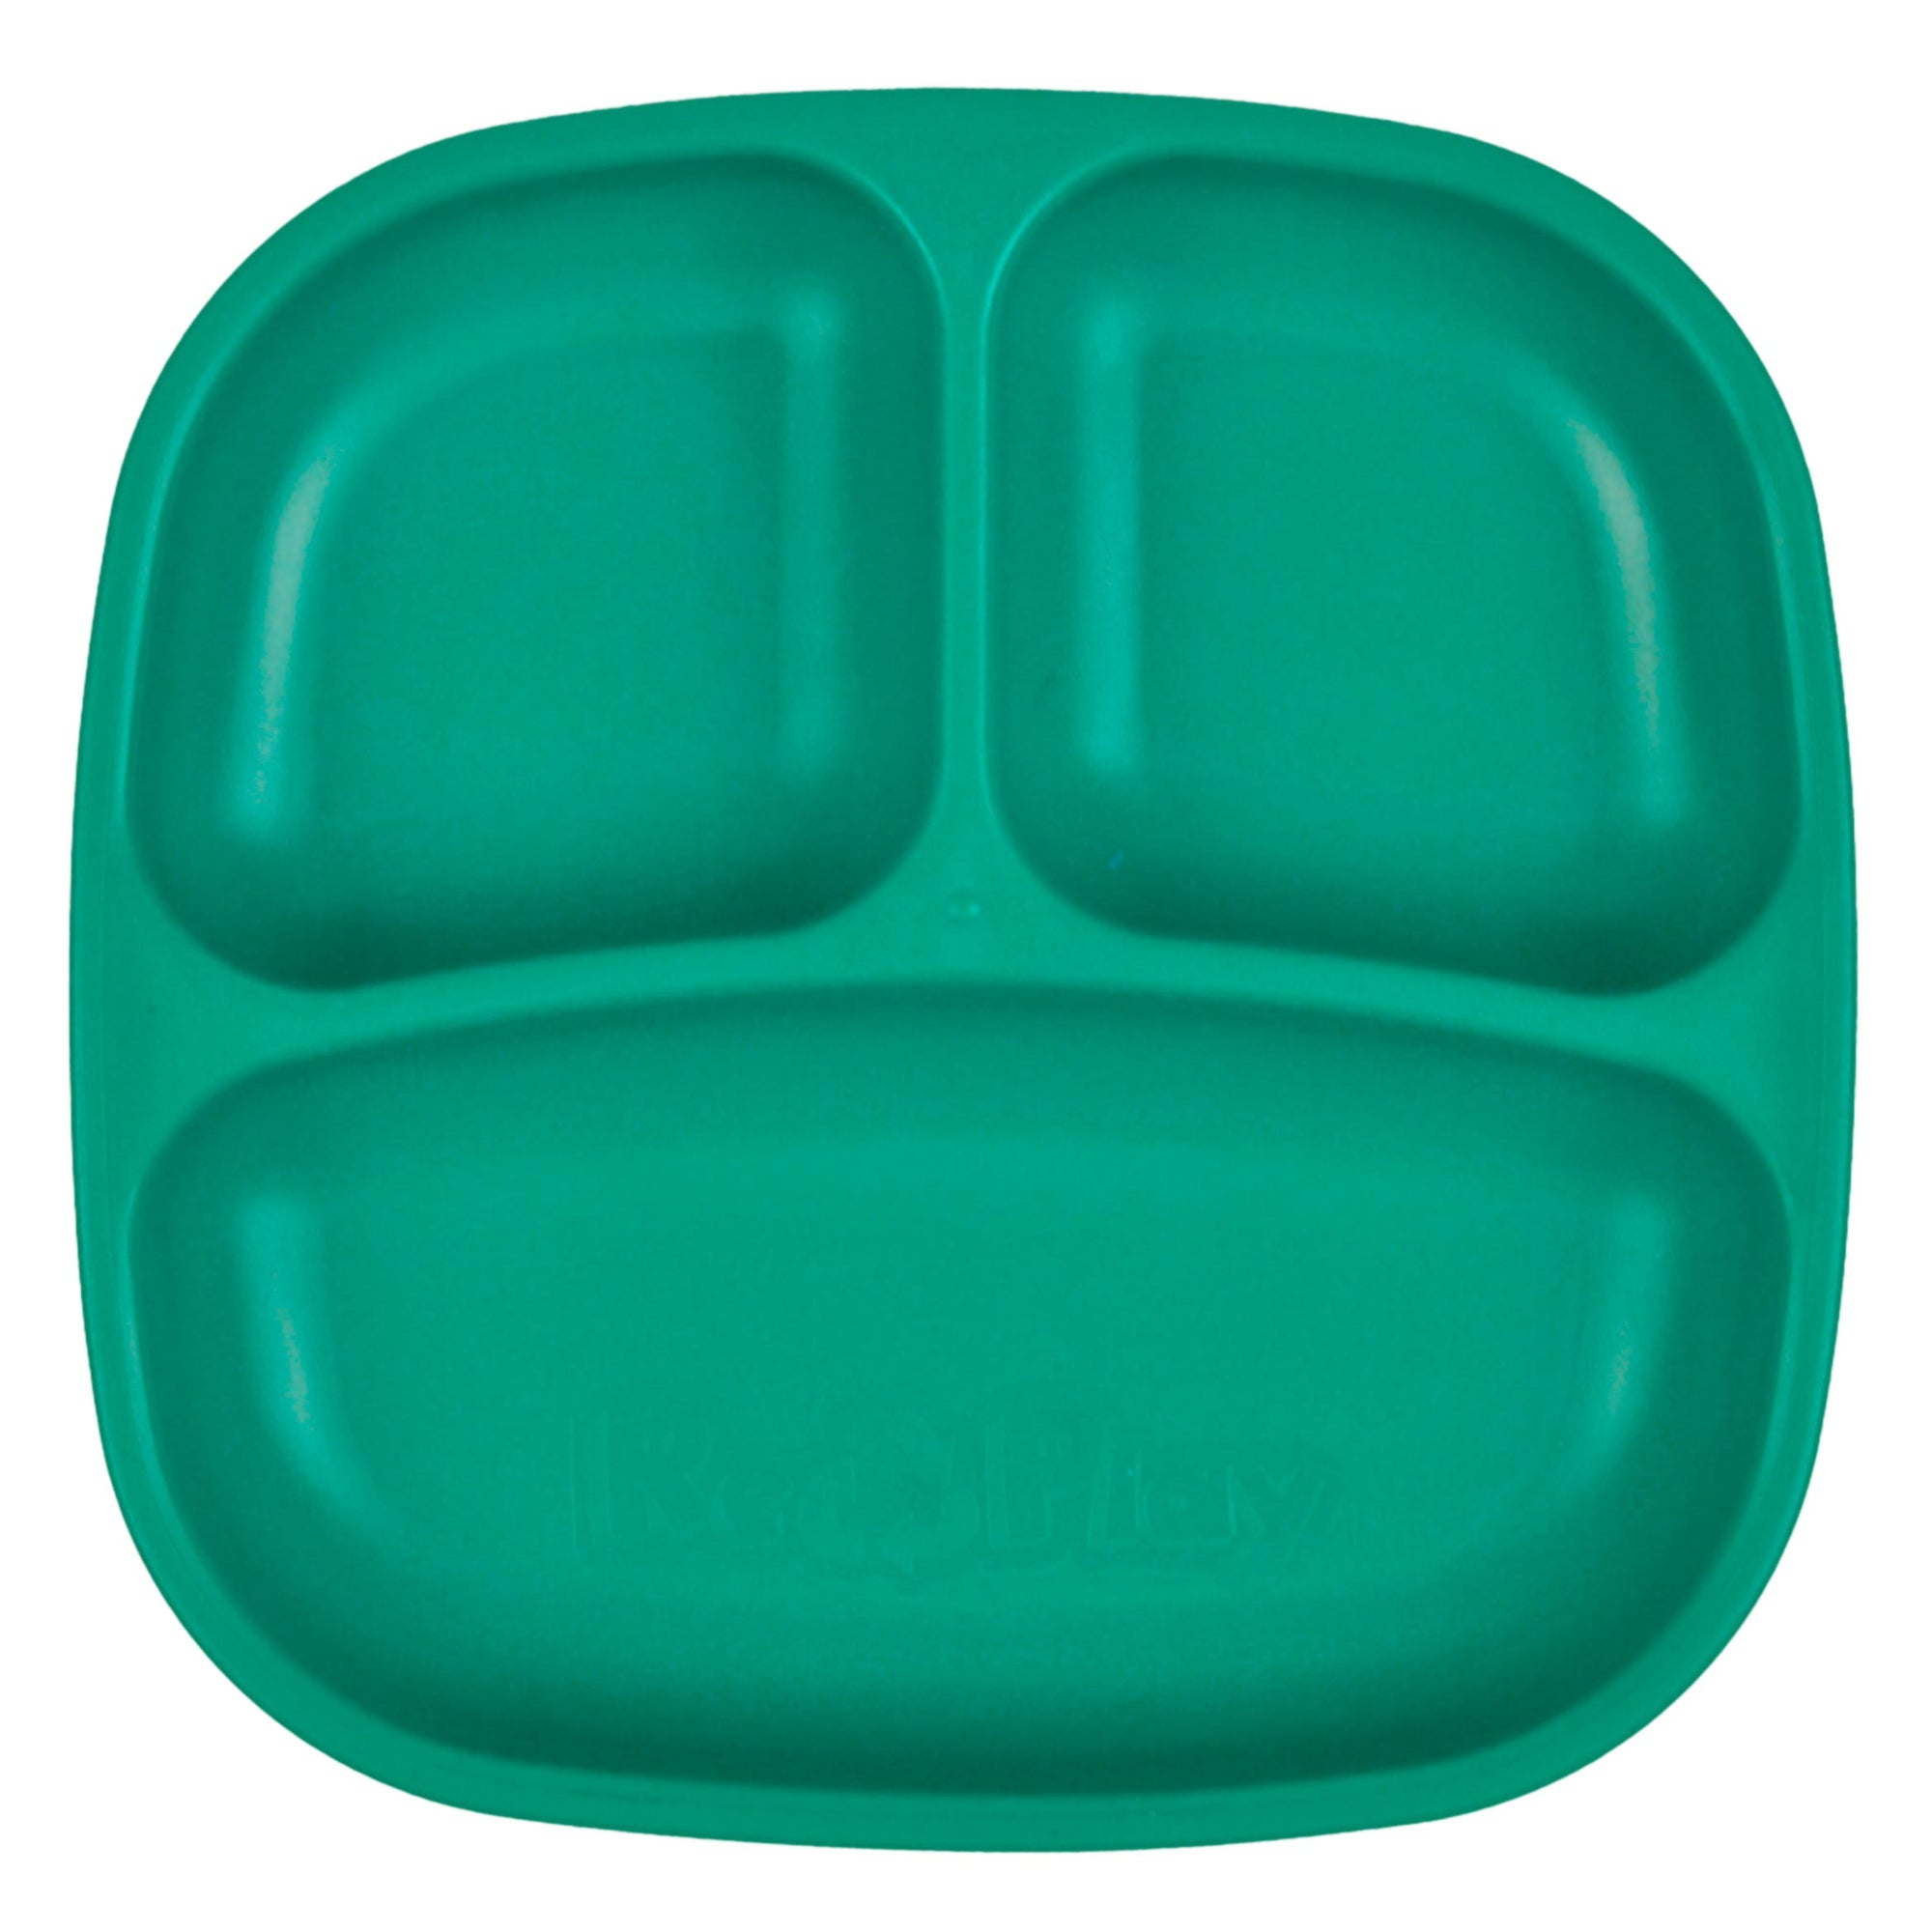 Divided Plate (Teal)